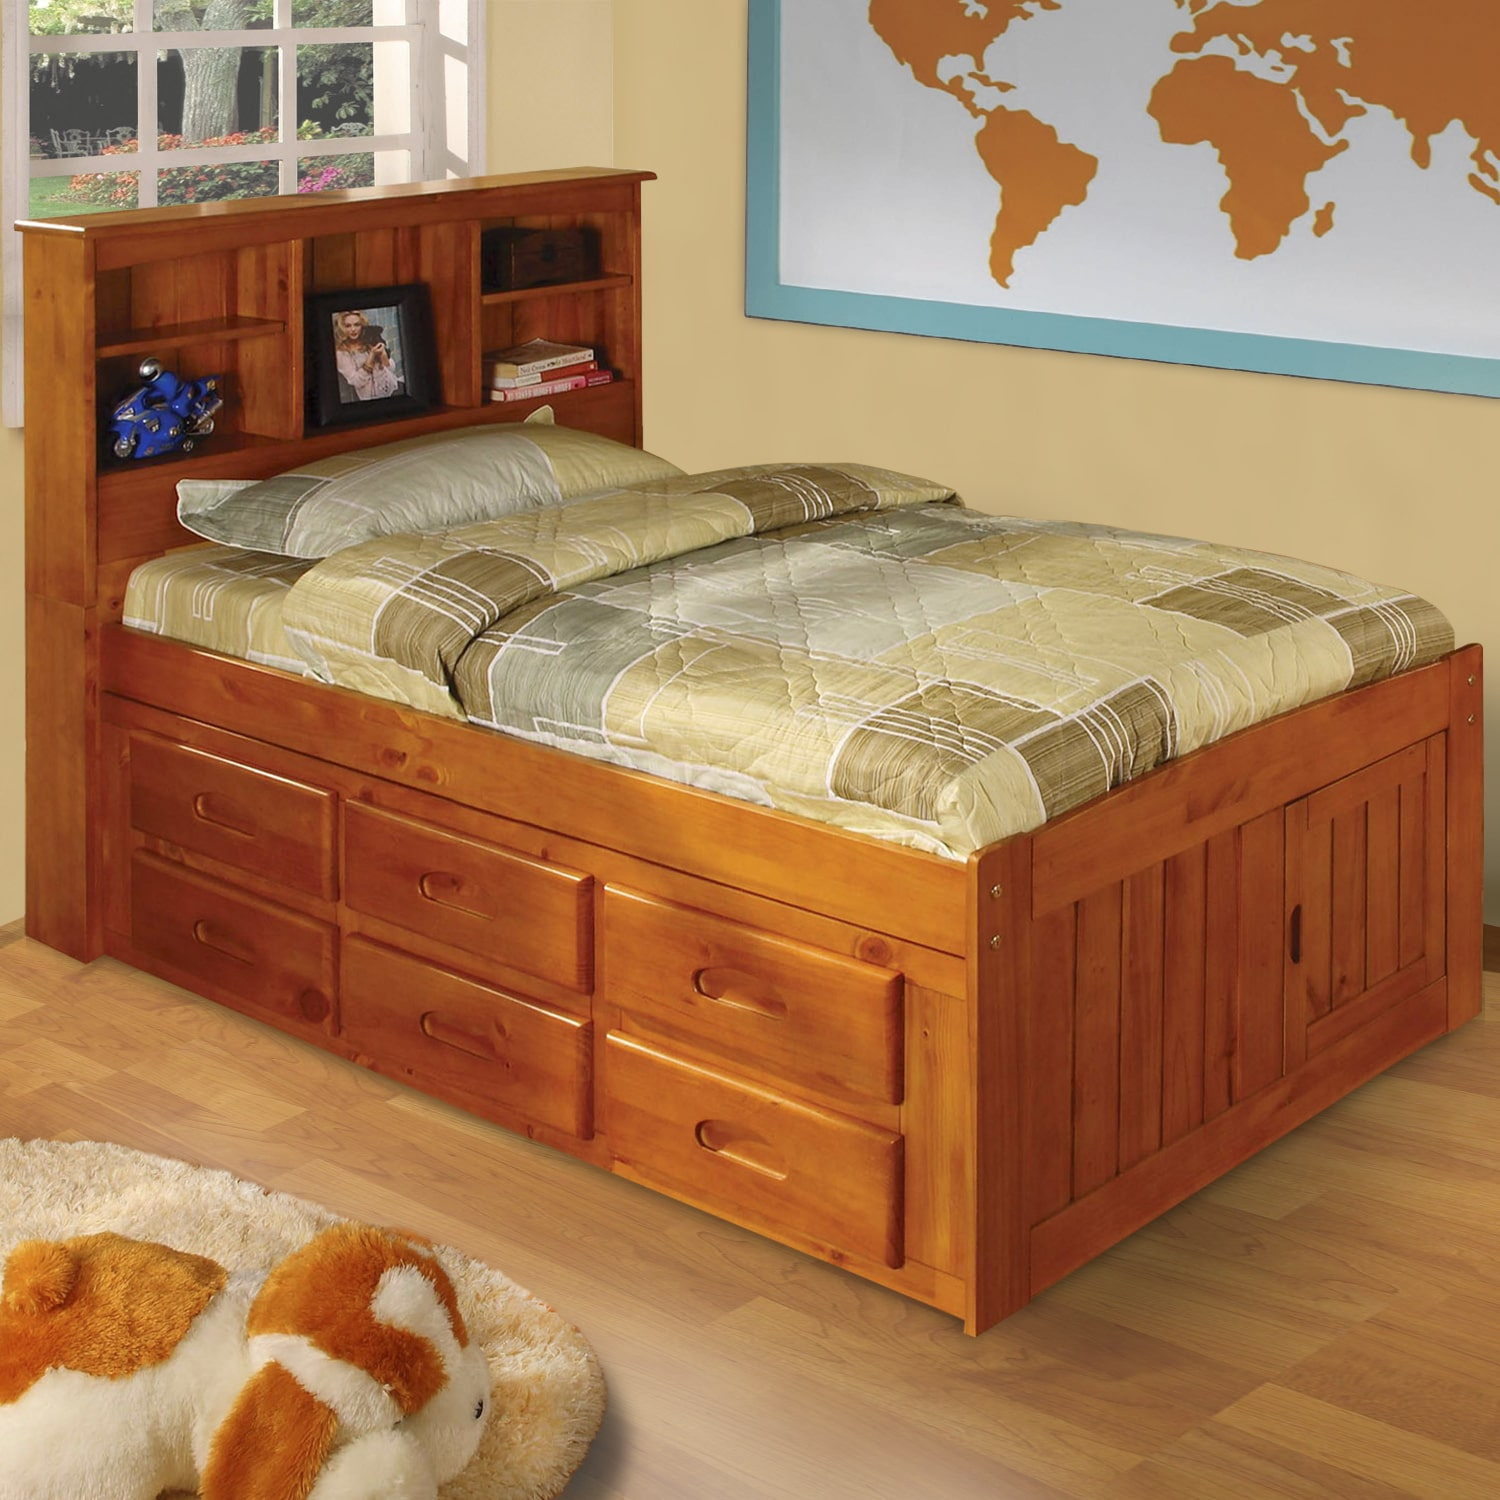 American Furniture Classics Honey-finished Pinewood Twin-sized Captain's Bed With 12 Drawers